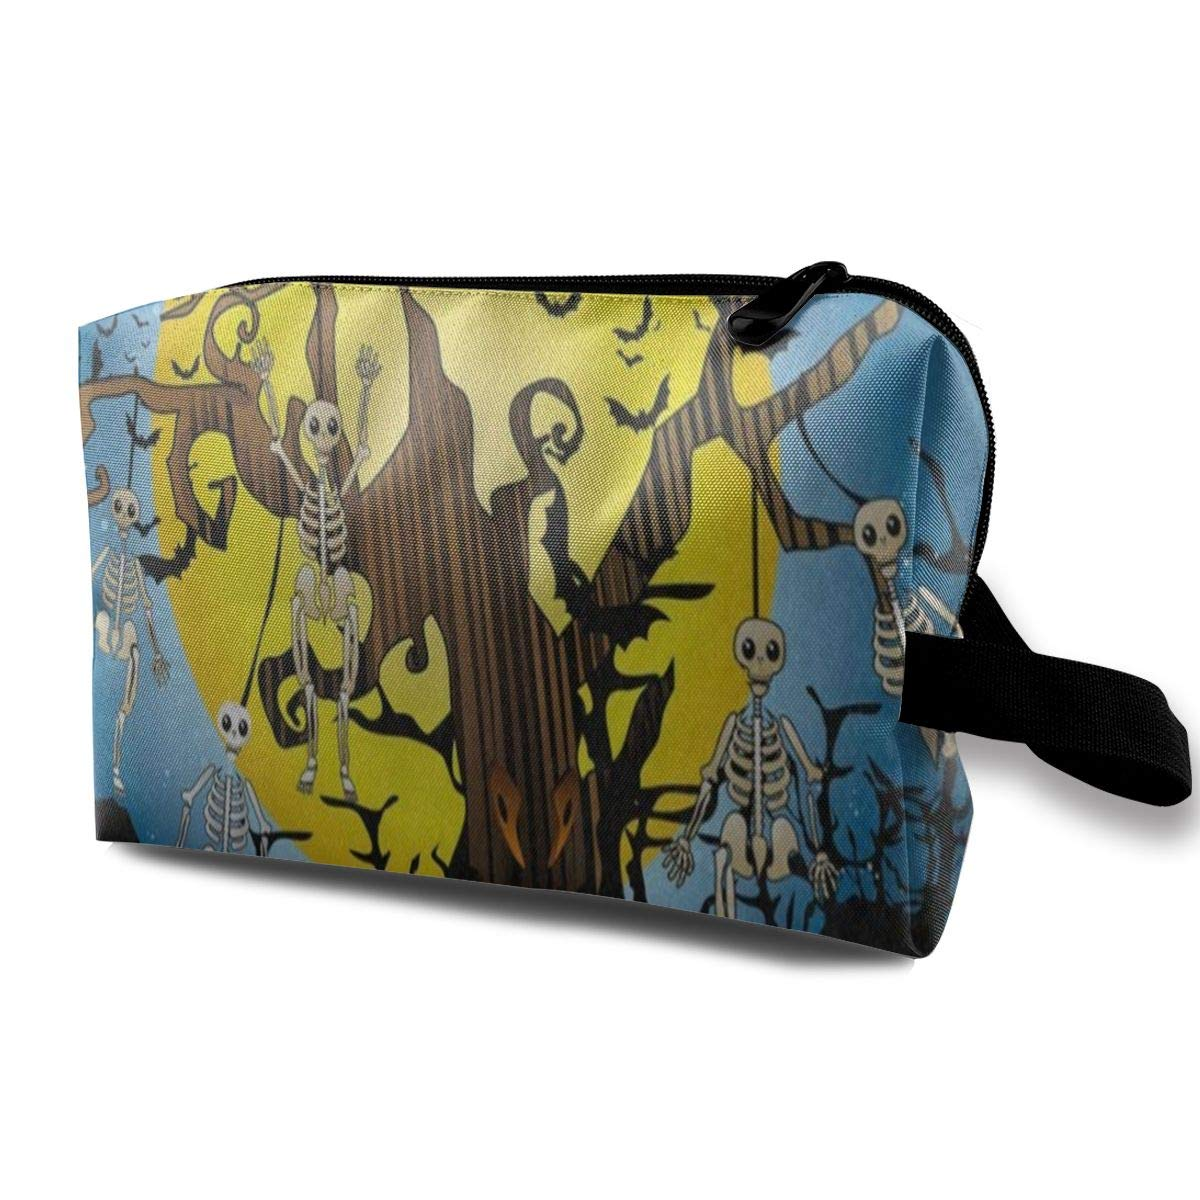 Makeup Bag Halloween Skull Tree Candle Bald Tree Handy Travel Multifunction Clutch Pouch Bags Hot Holder For Women